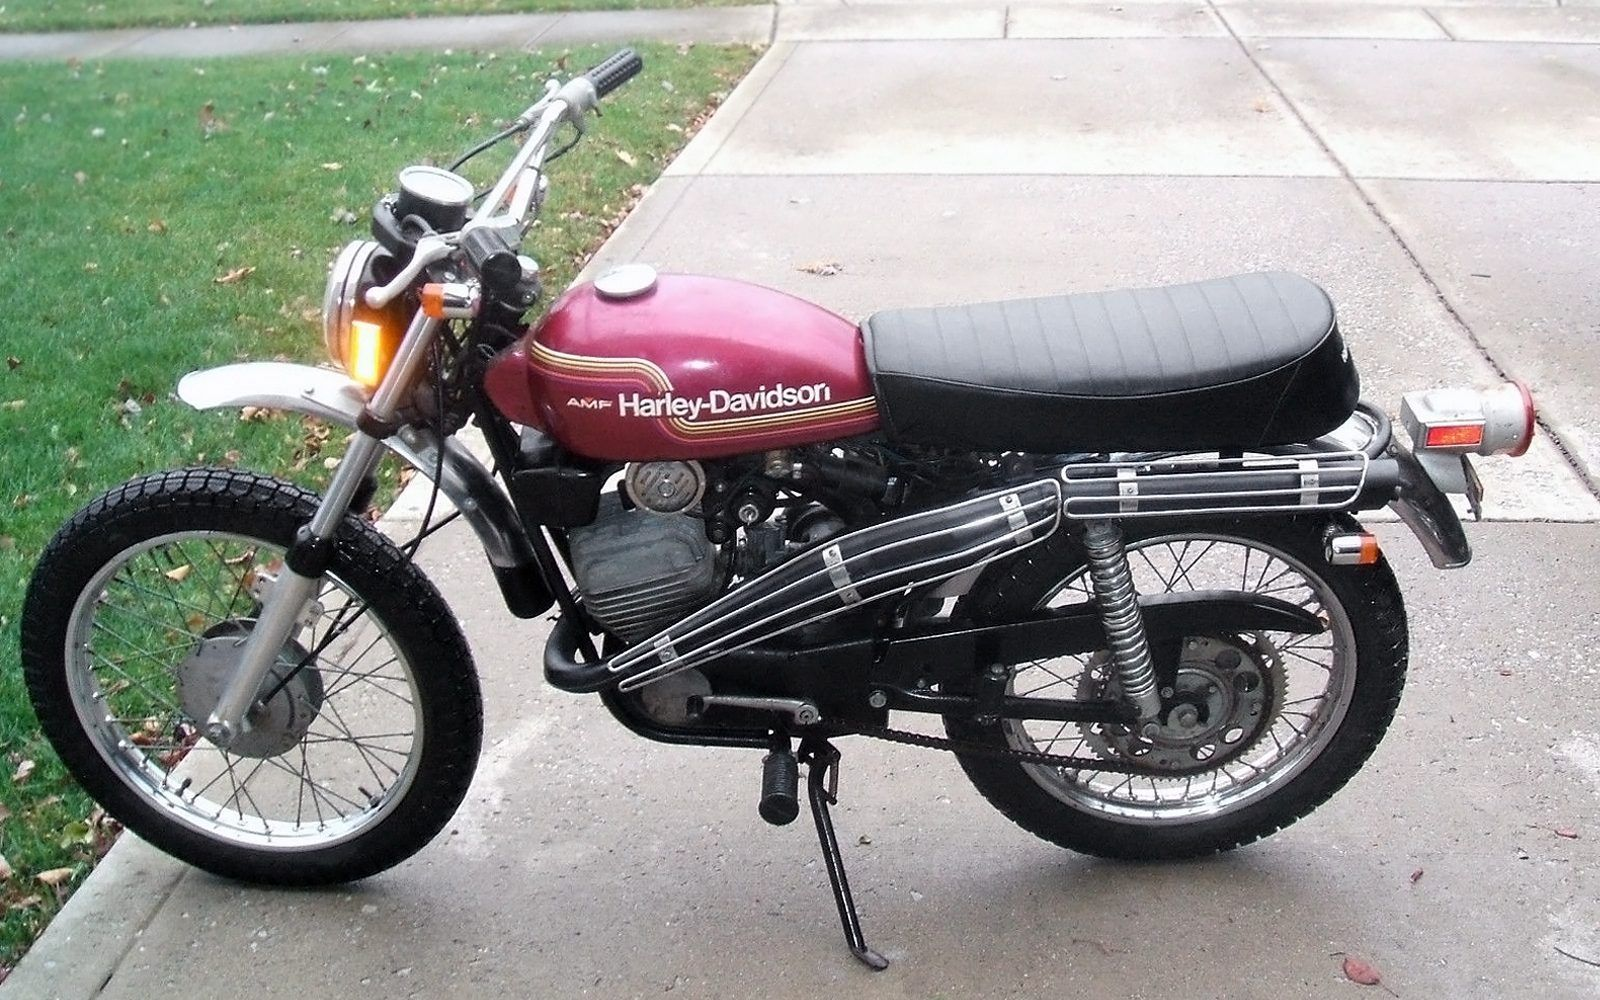 328 Mile Italian 1974 Harley Davidson Sx 125 With Images Harley Davidson Amf Harley Harley